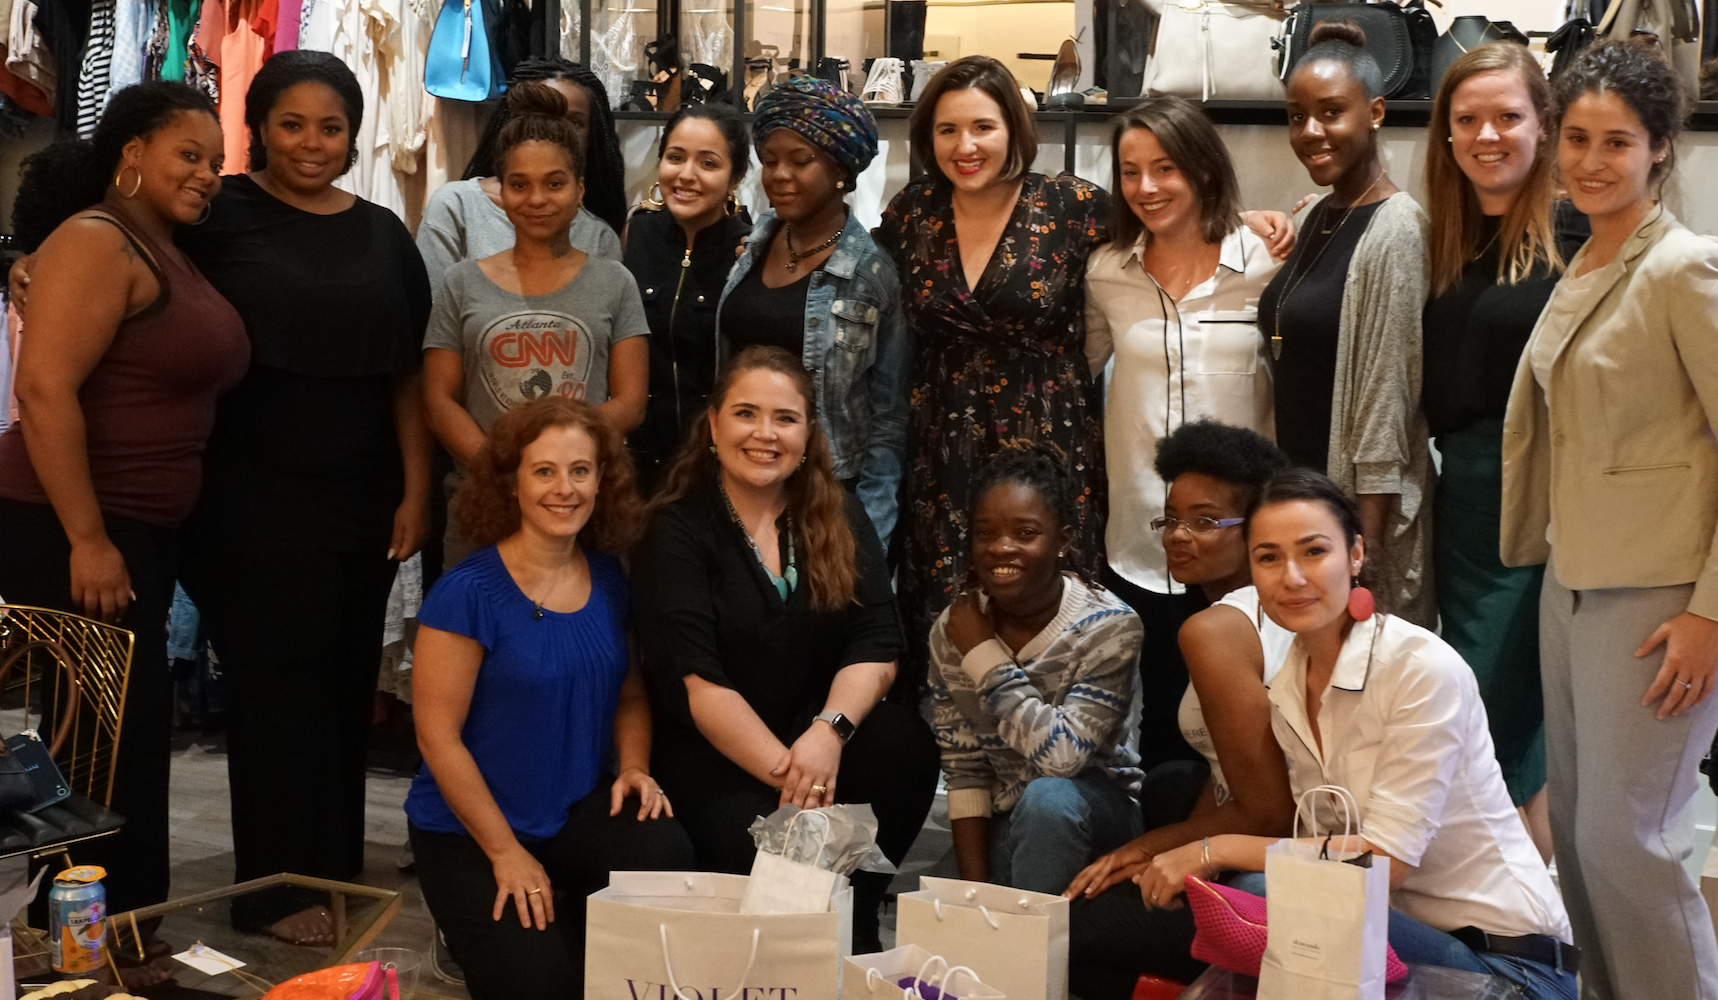 Women stand together after makeover experience in a boutique clothing store.